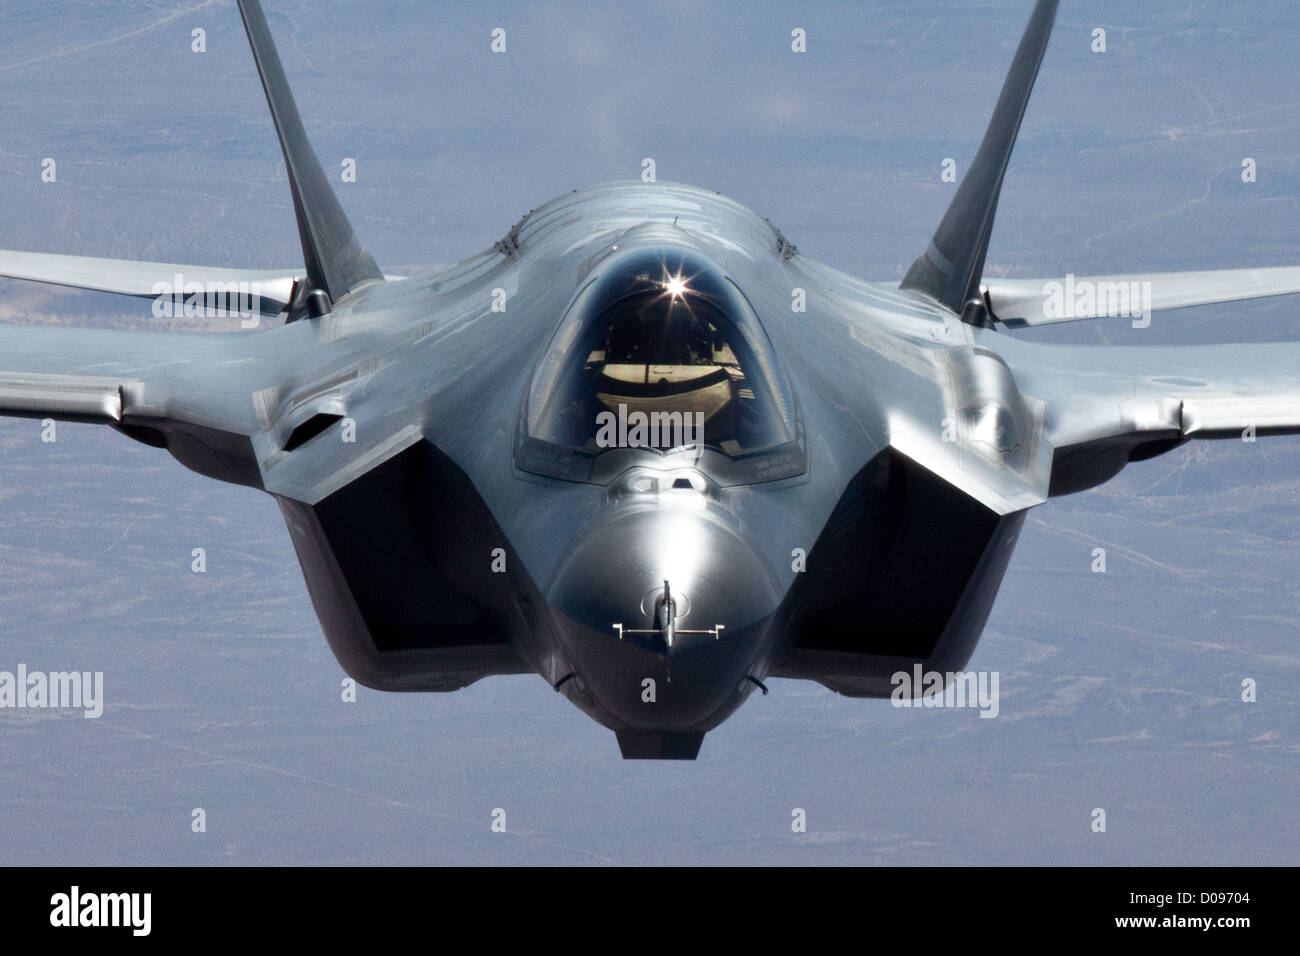 F-35A test aircraft AF-4, captured during refueling from the U.S. Air Force tanker - Stock Image